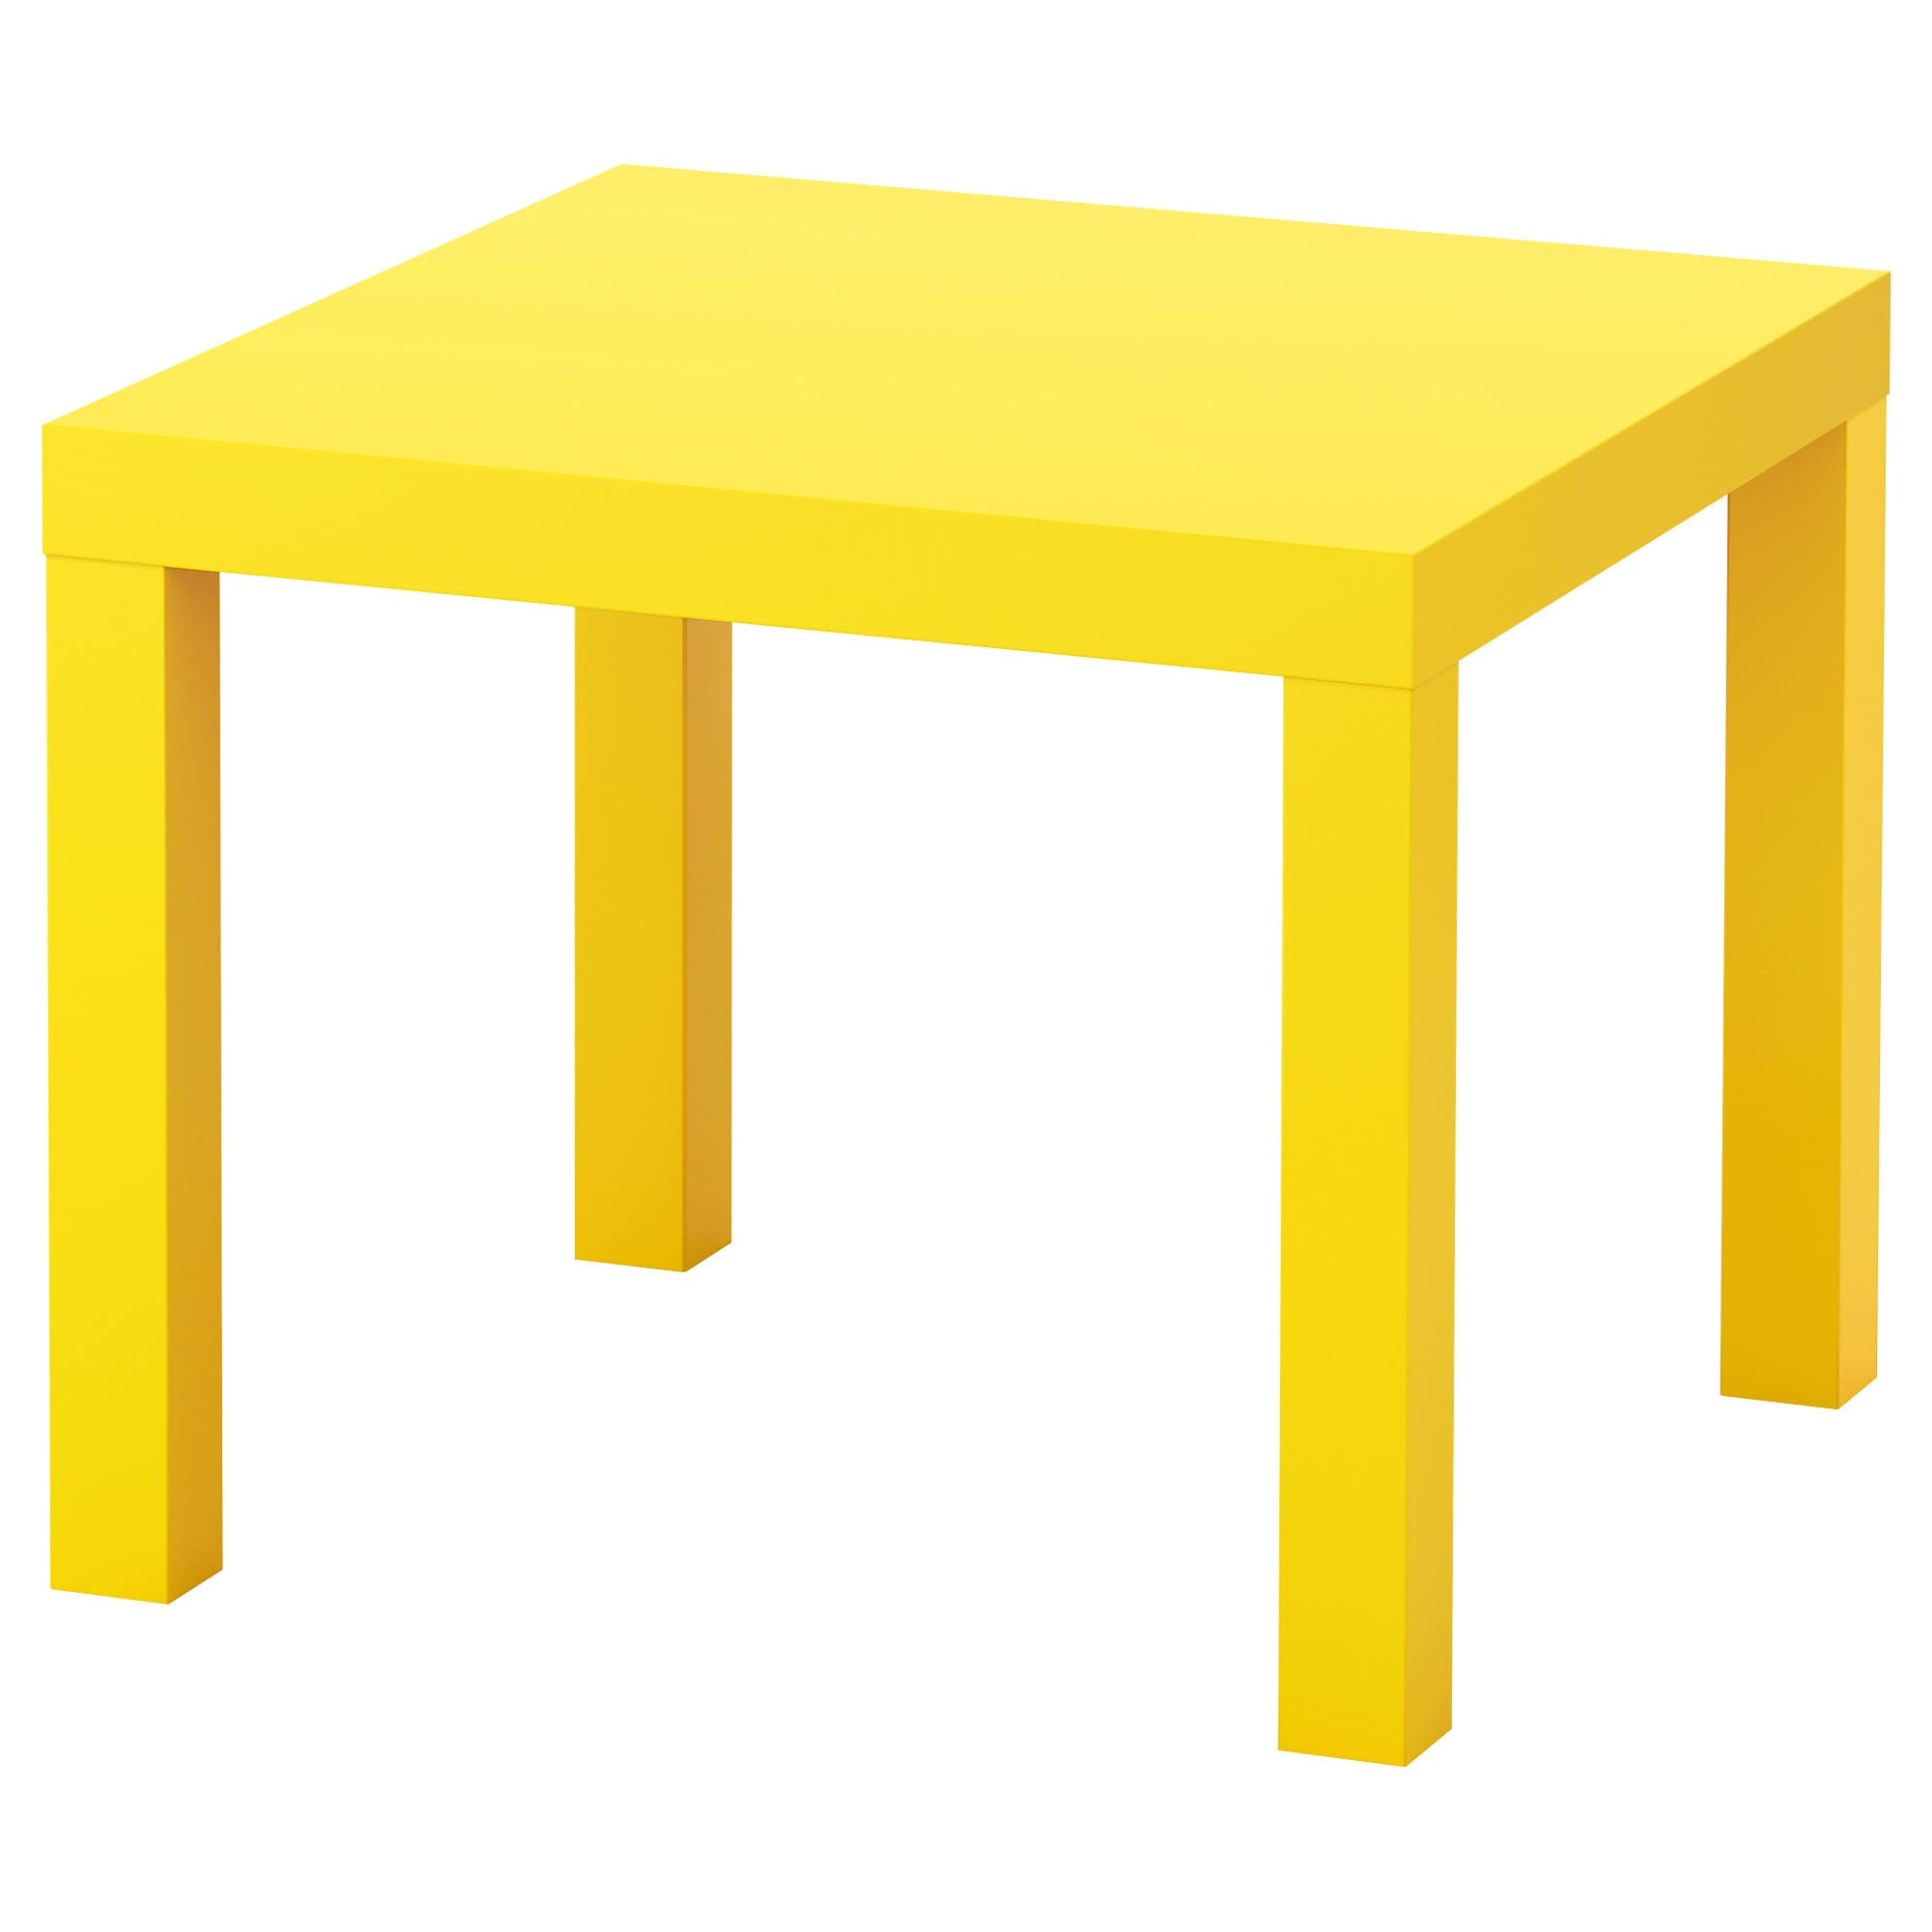 astounding yellow outdoor accent table garden white ideas chairs cover lots side big clearance small home target brick metal tables furniture tablecloth umbrella full size piece